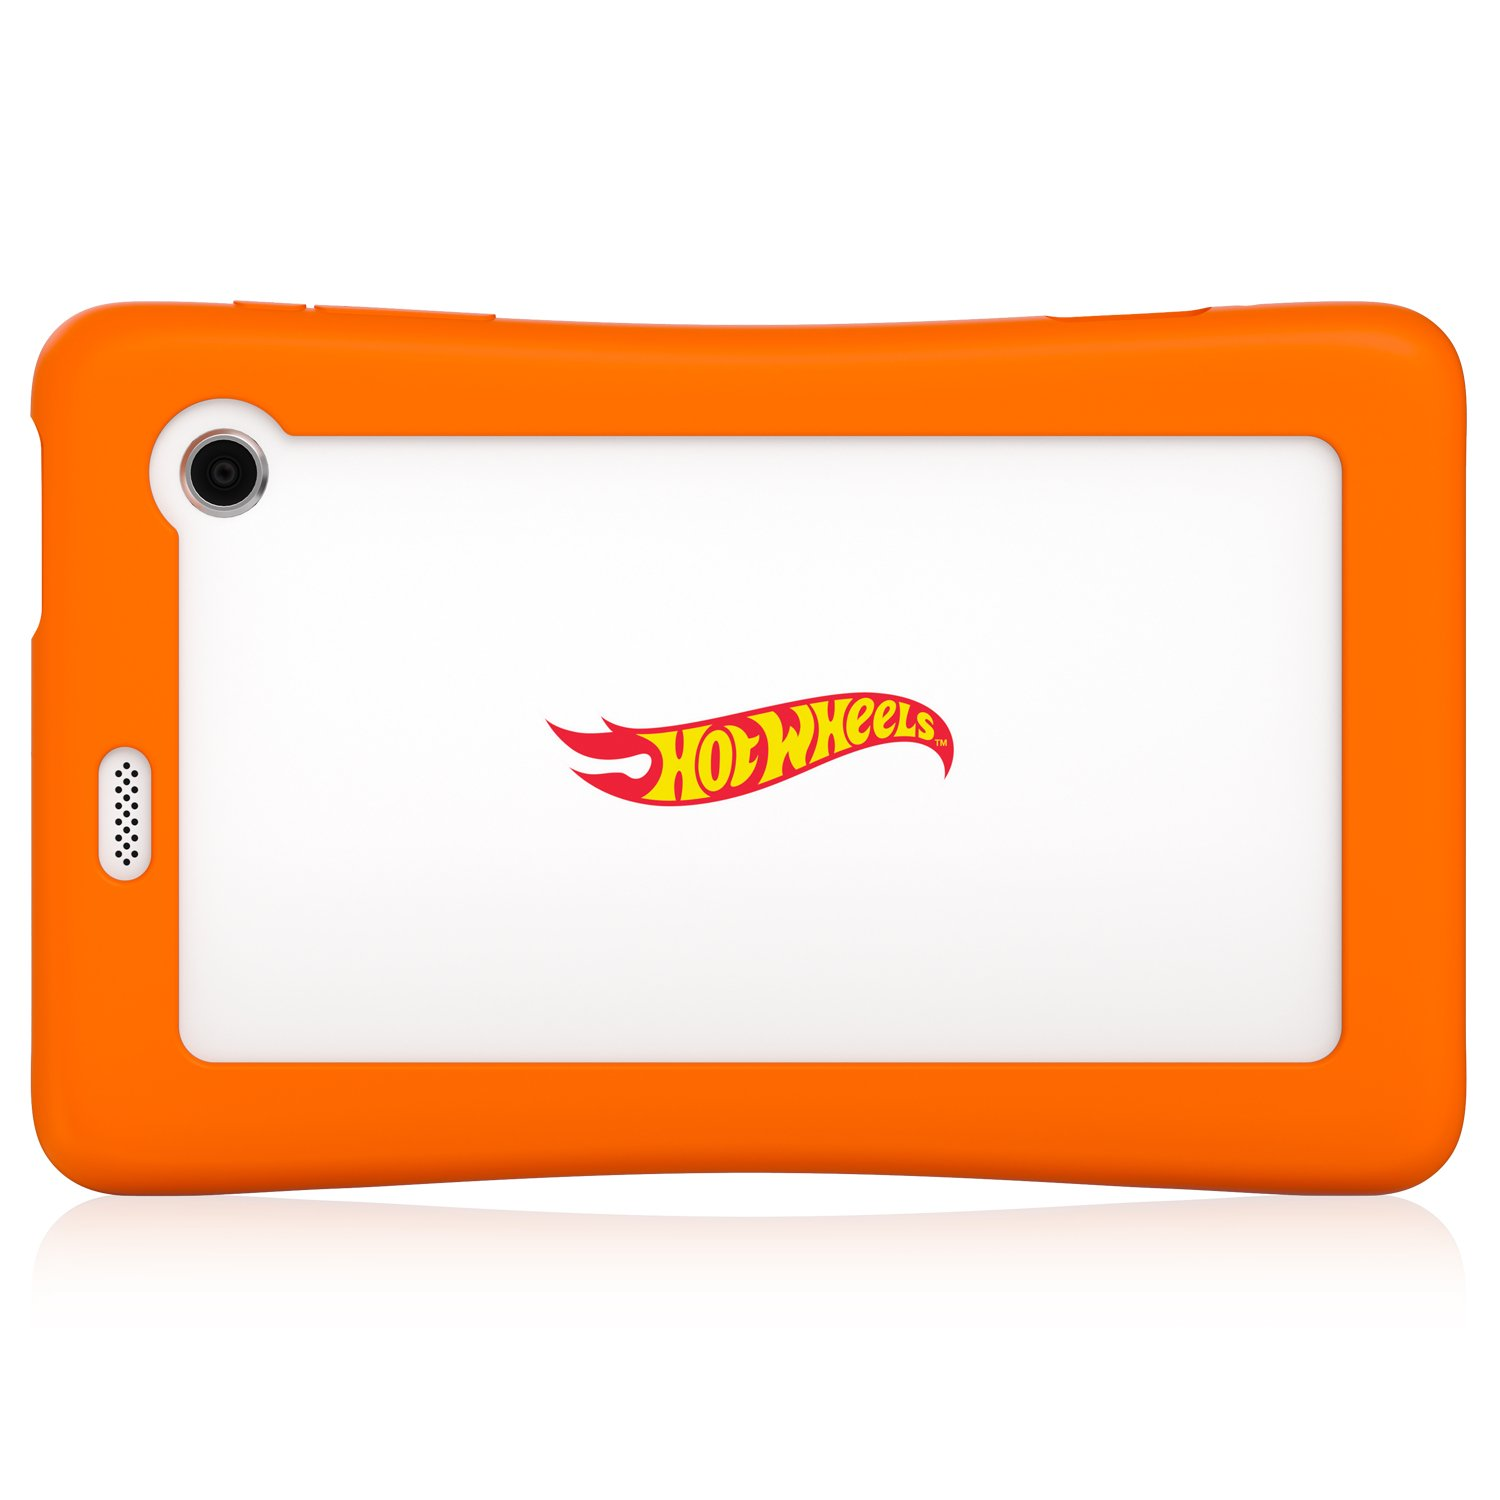 Hot Wheels Tablet. Powered by nabi by Hot Wheels (Image #3)